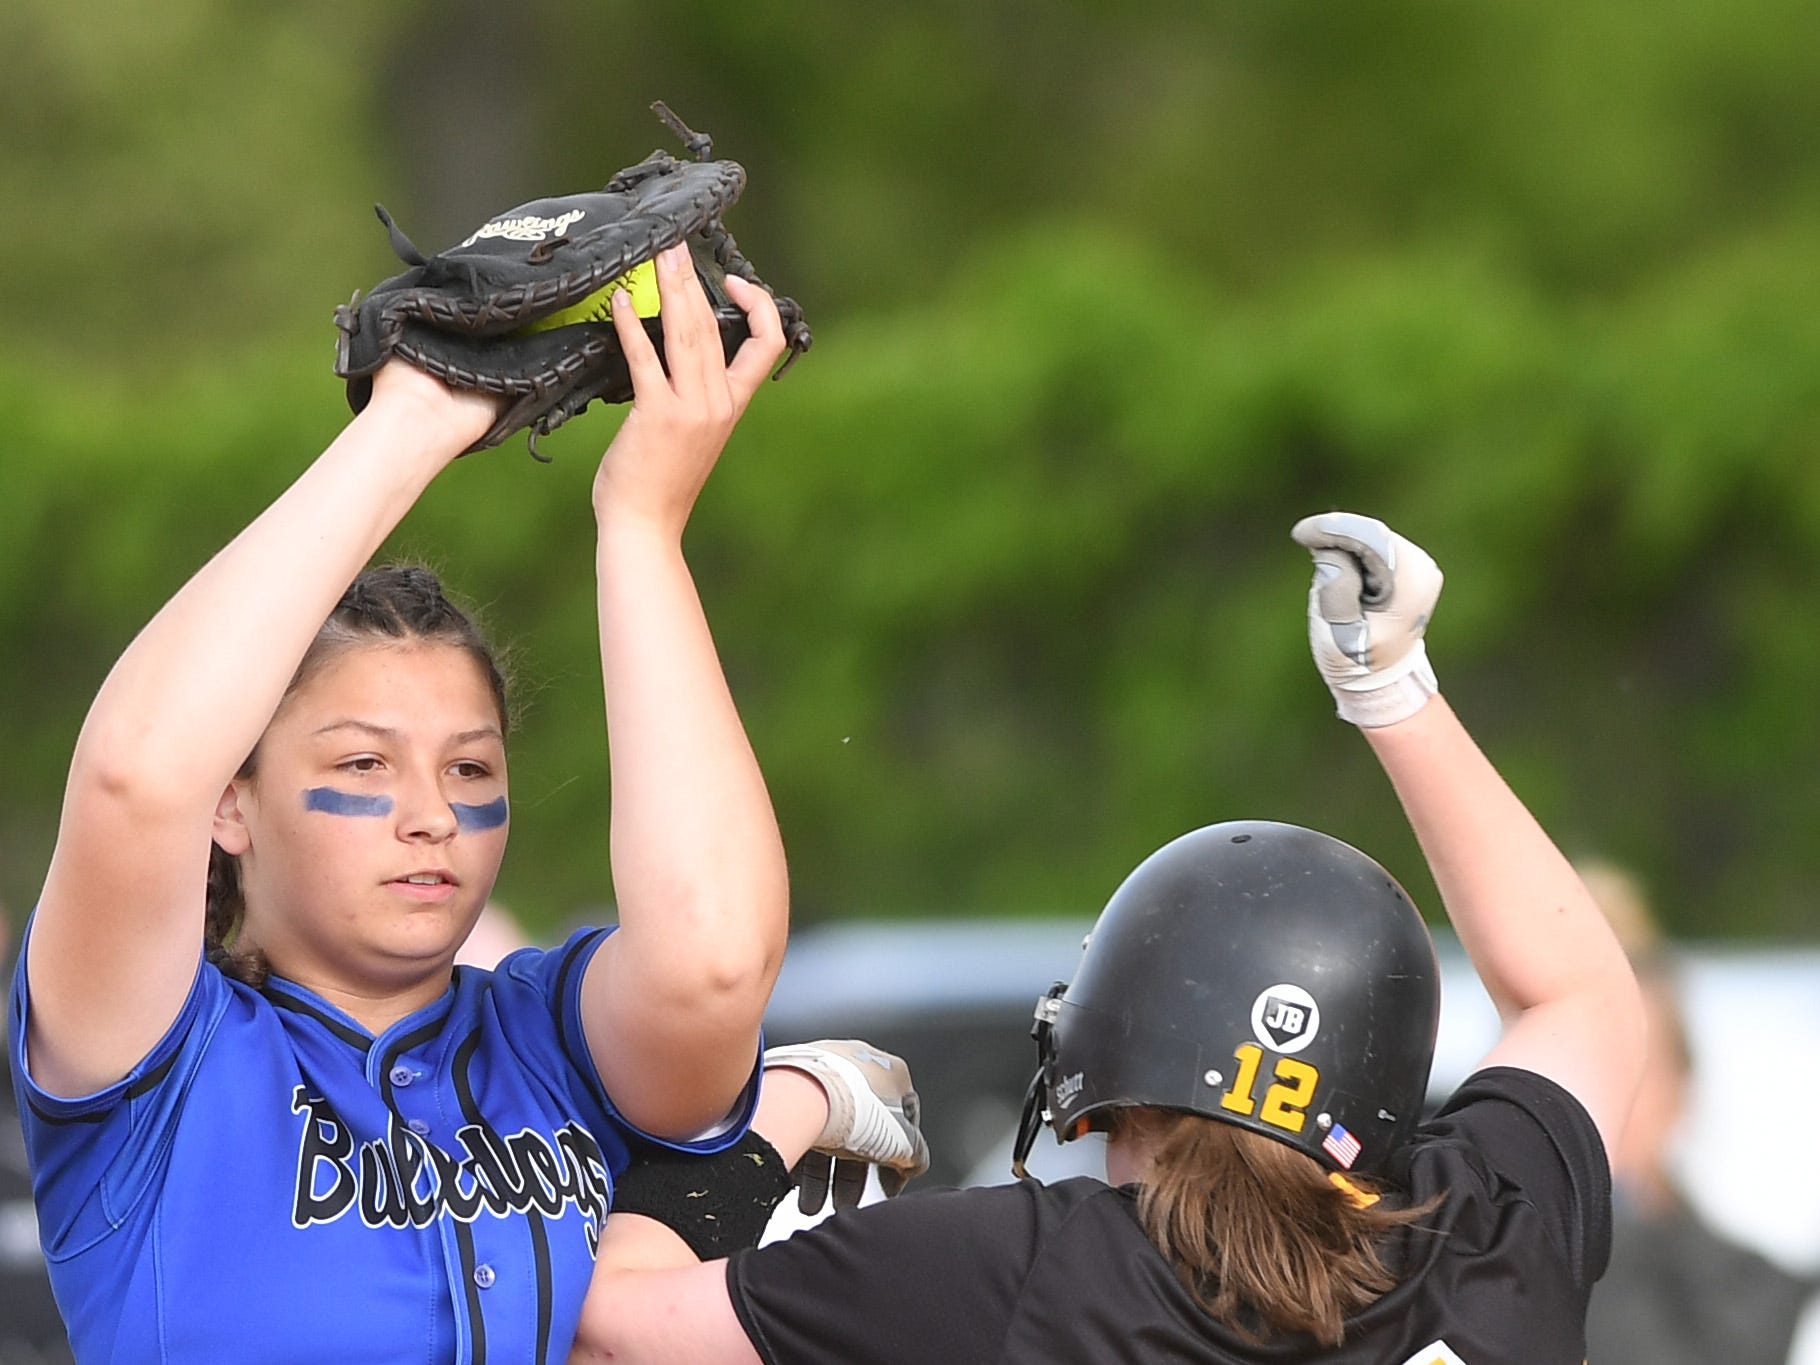 Passaic County Technical Institute vs. West Milford in the Passaic County Tournament softball final at Wayne Hills High School on Wednesday, May 15, 2019. PCTI #3 Kayla Nelson makes a catch to get WM #12 Jenna Moran out.